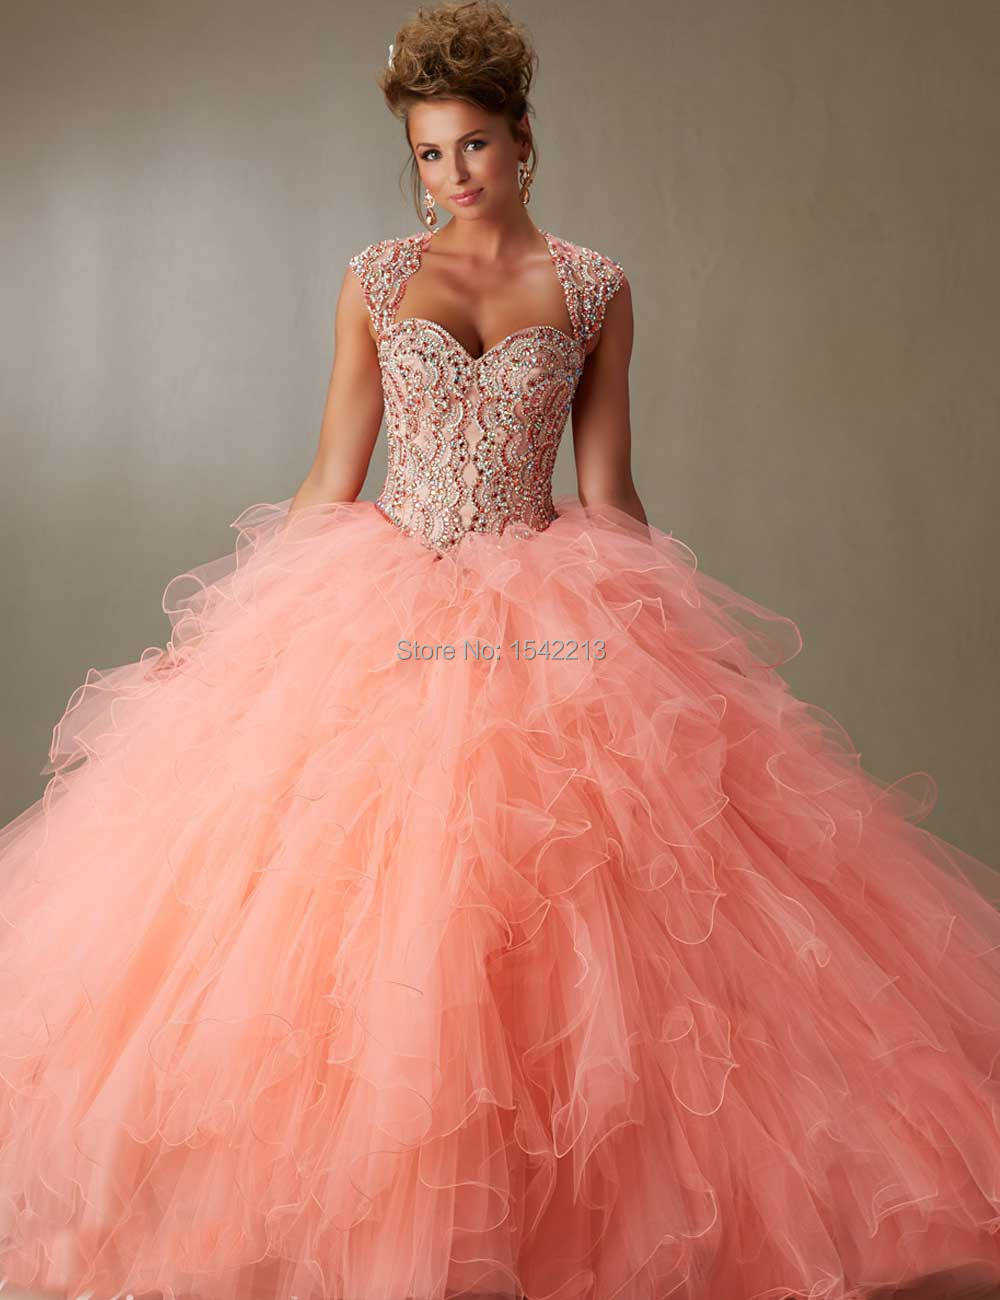 df10d149d007 Coral Light Blue Sweetheart Beaded Ball Gown Quinceanera Dress WIth  Removable Strap Girls Sweet 16 Prom Gowns 2017